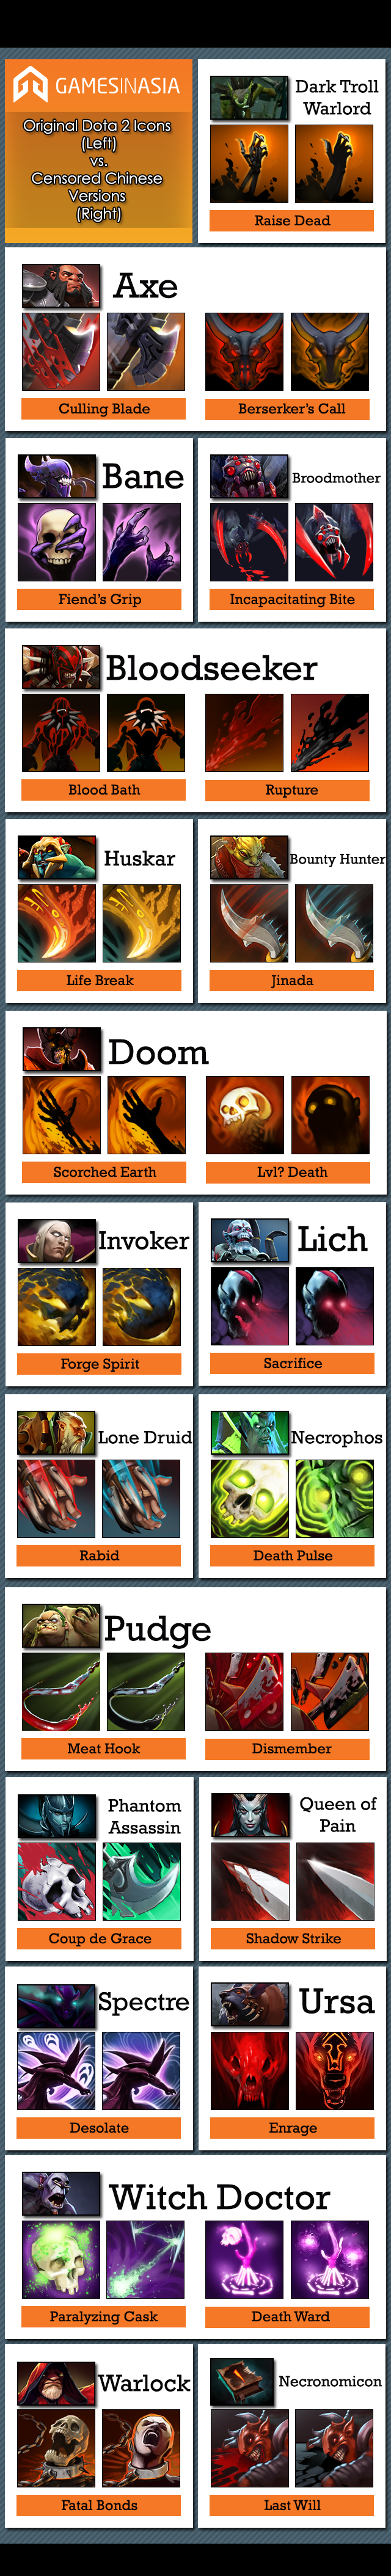 Weekend time-waster: original Dota 2 icons vs  censored